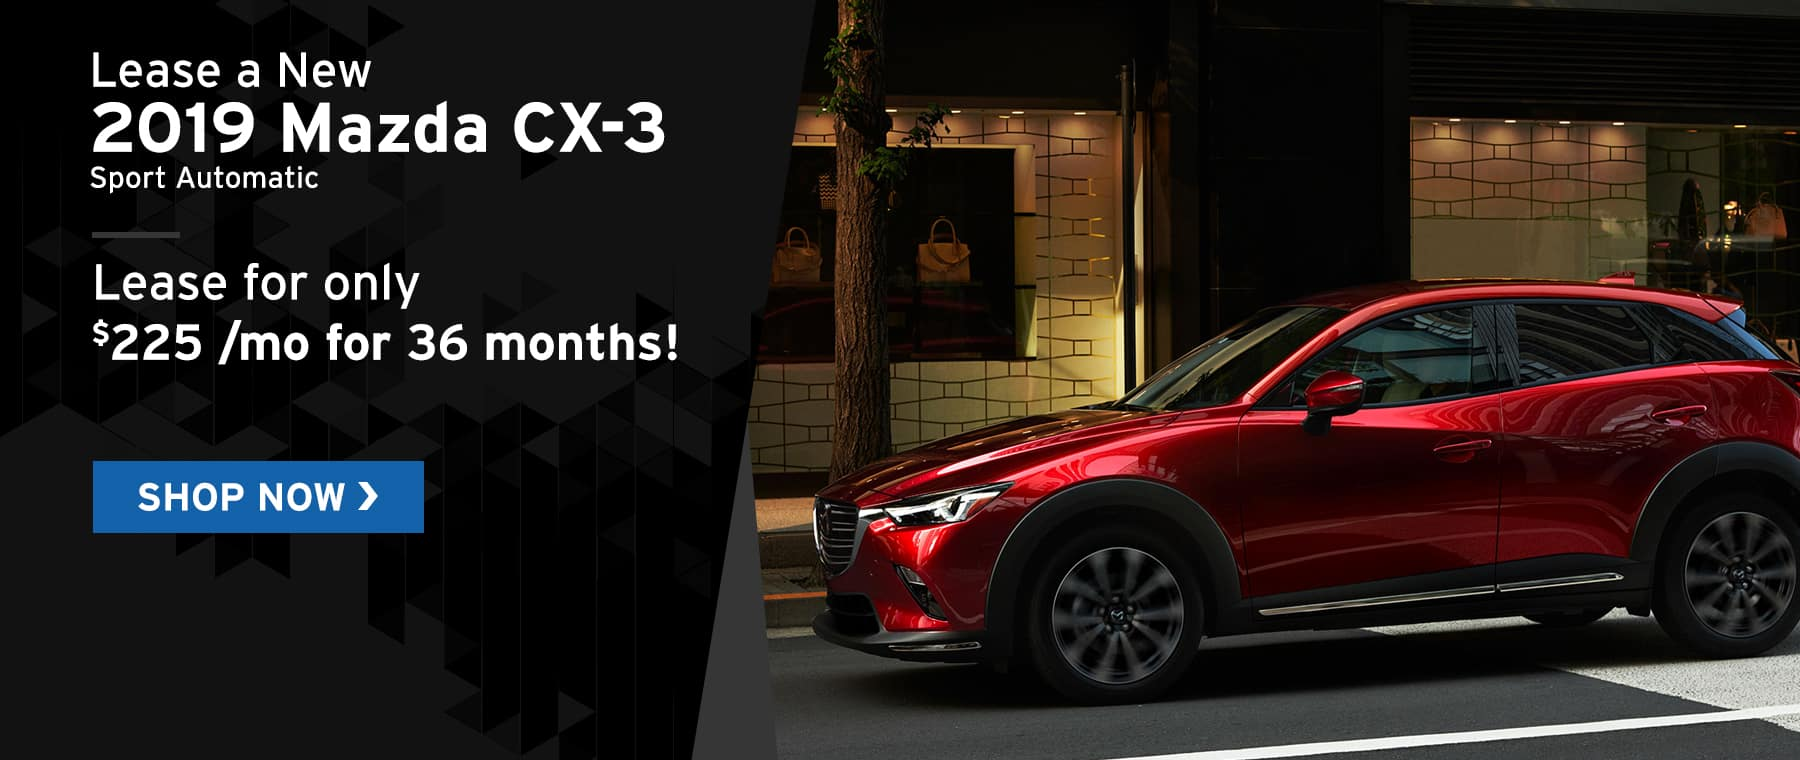 CX-3 at Hubler Mazda